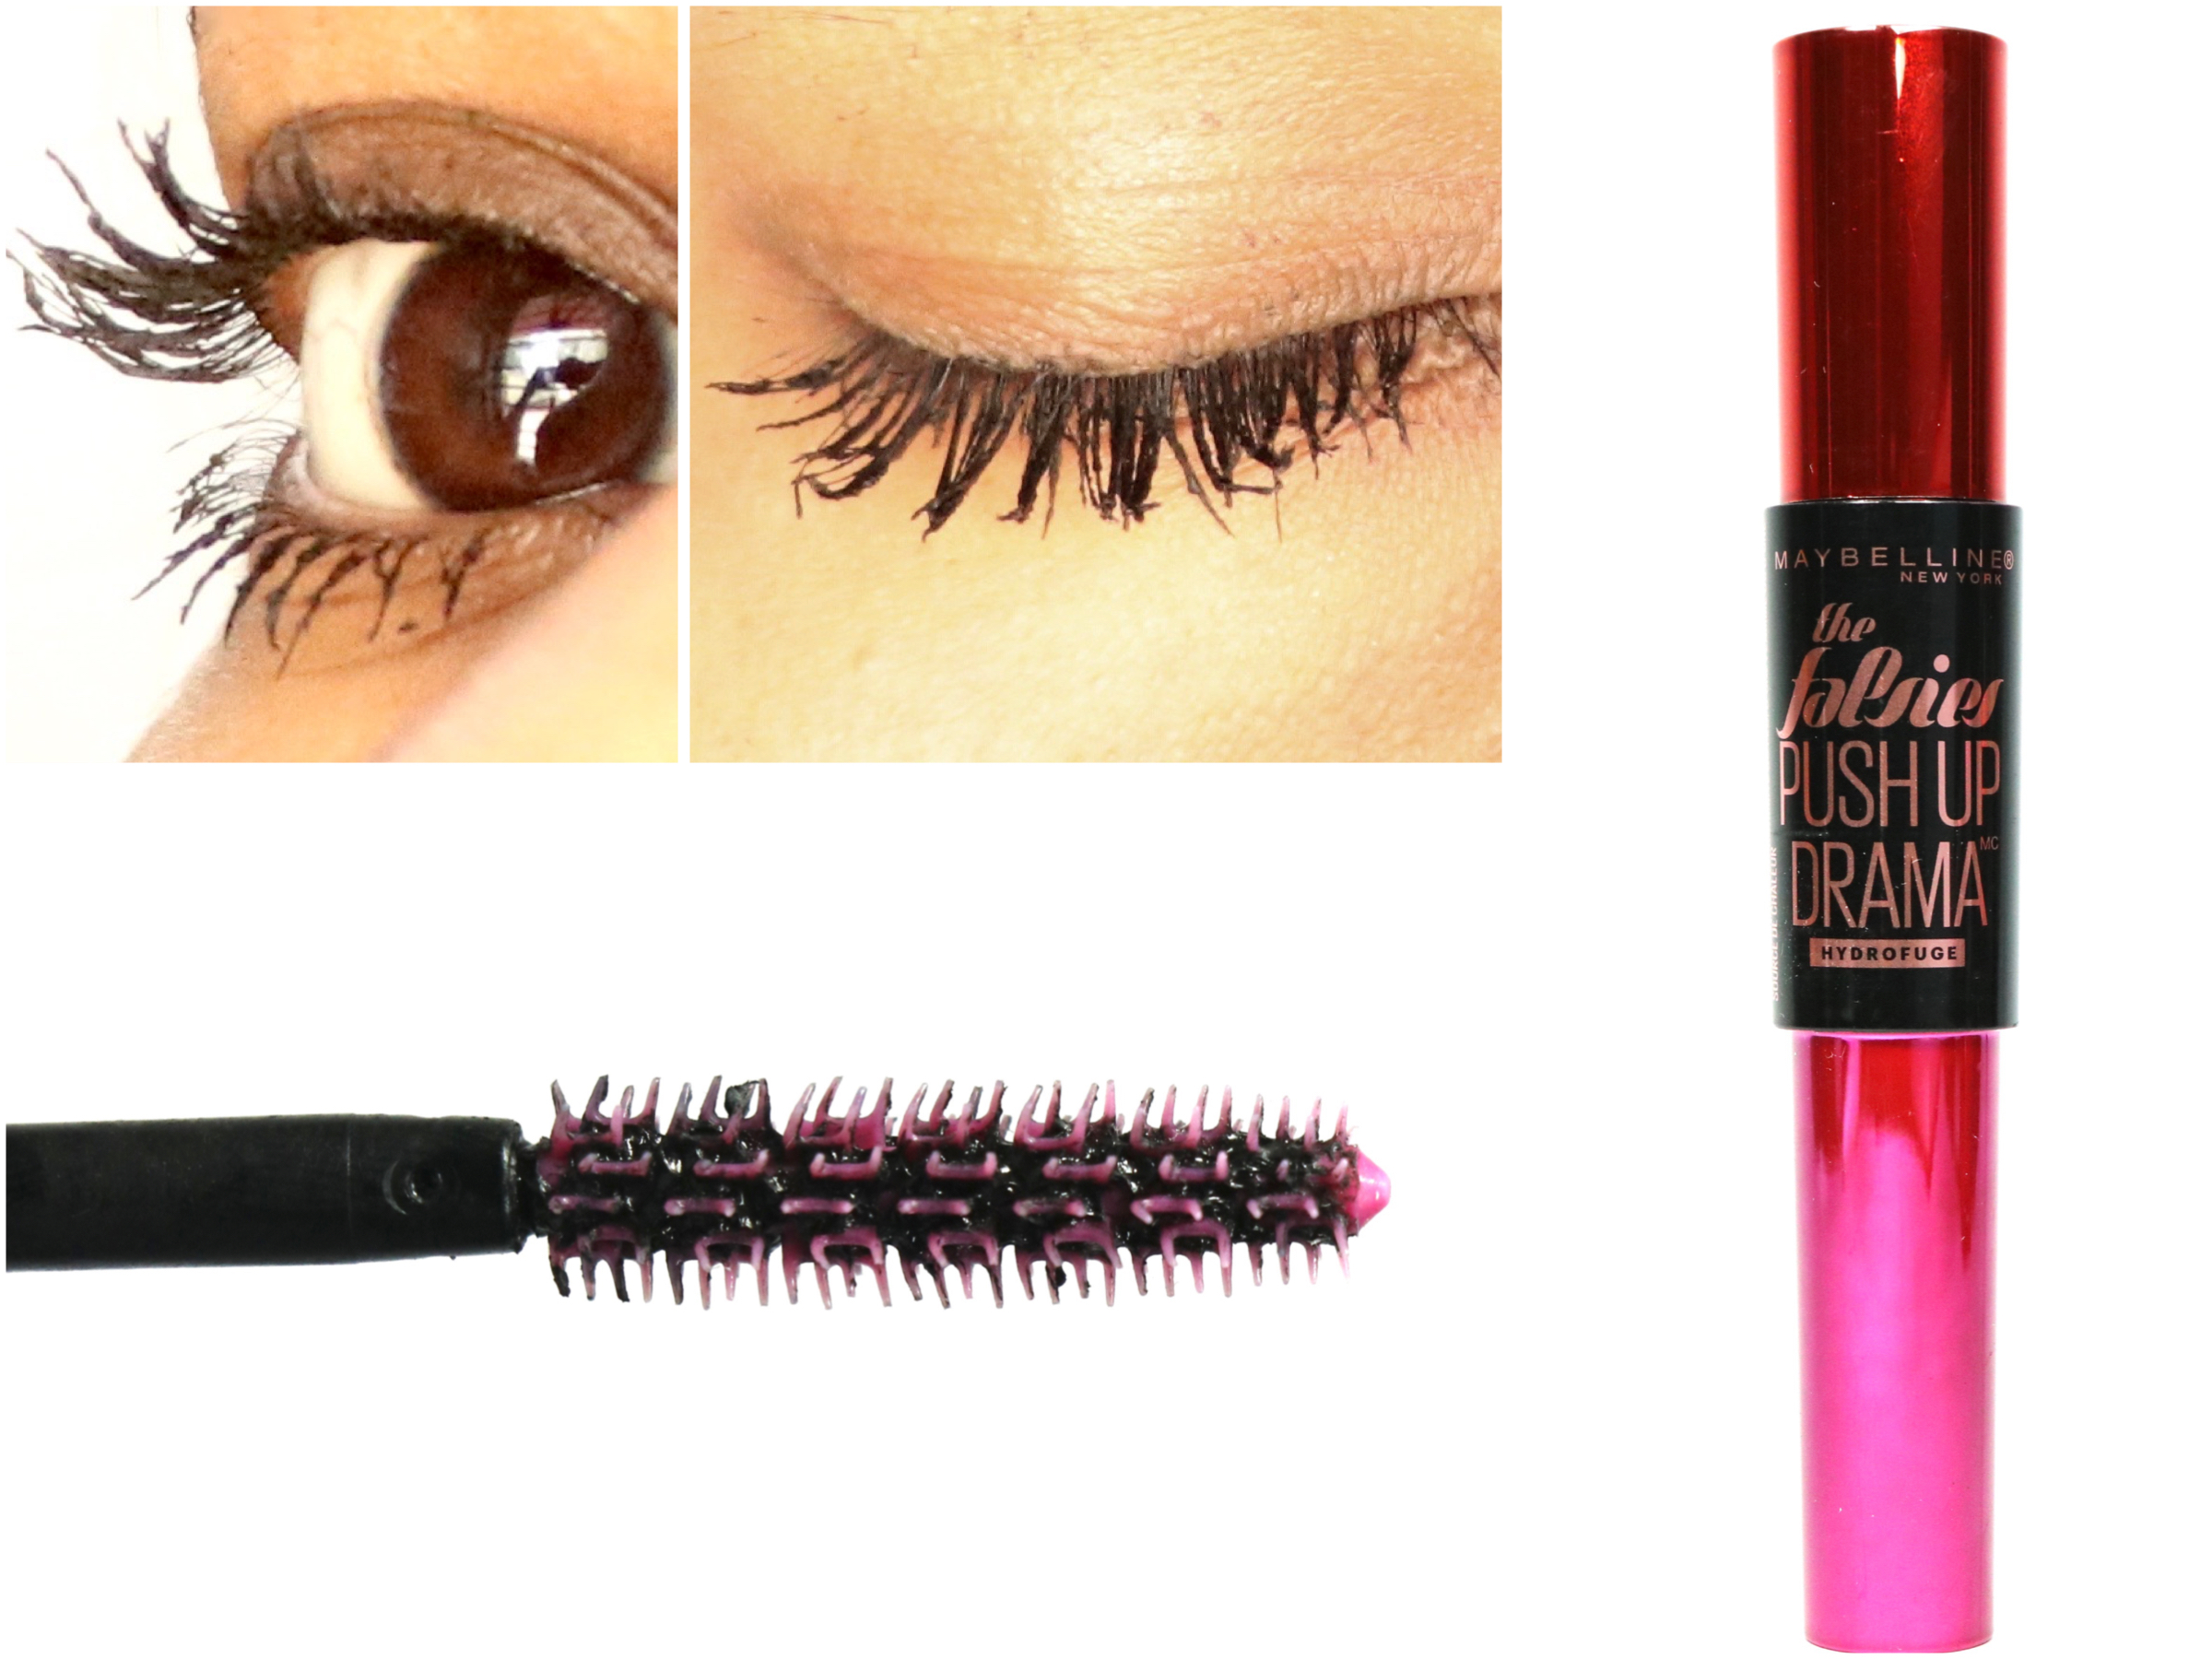 Volum' Express The Falsies Push Up Drama Waterproof Mascara by Maybelline #7